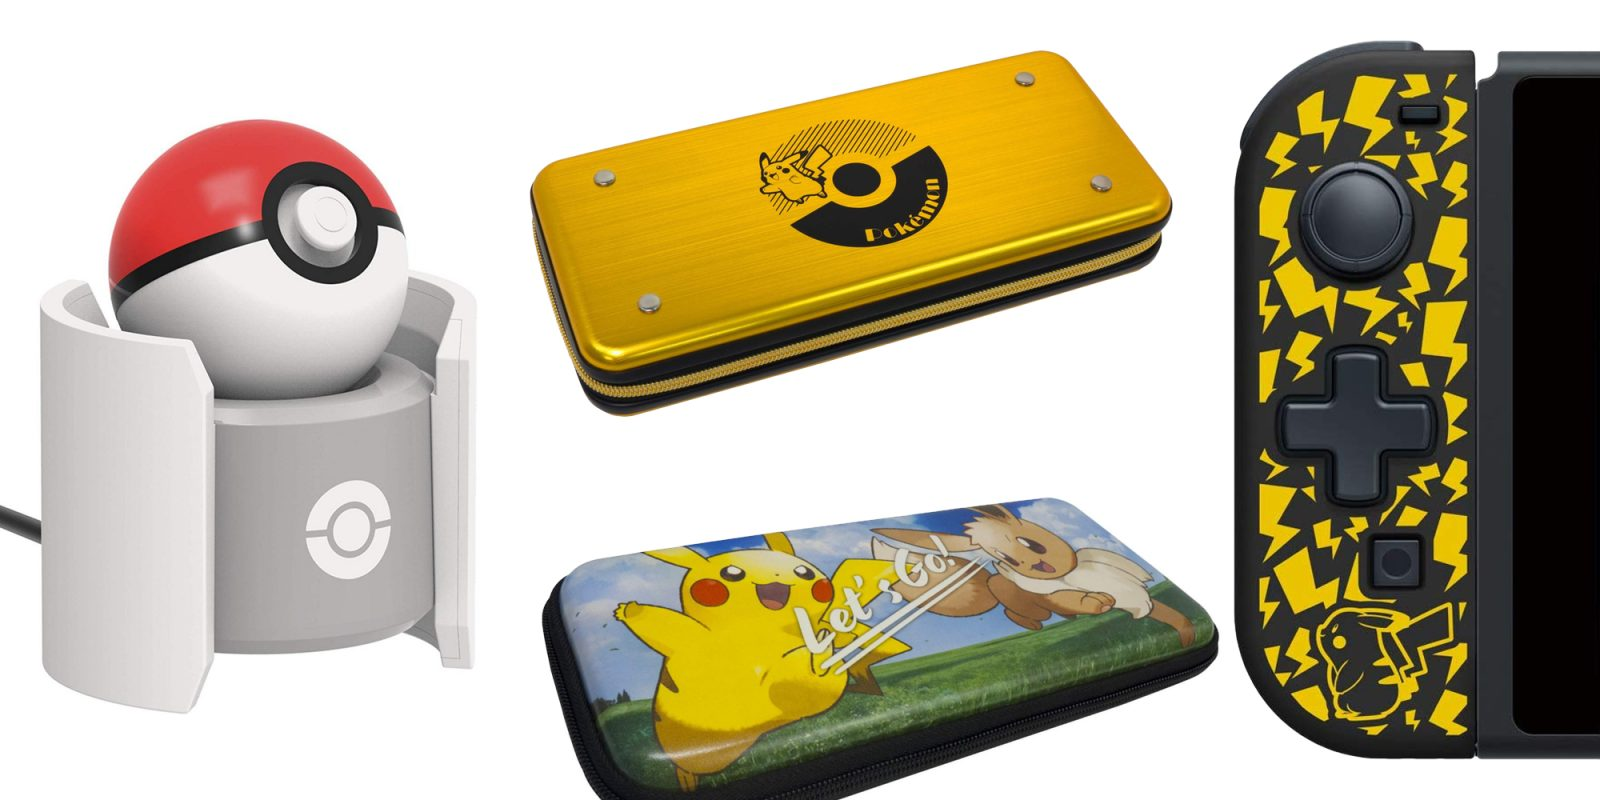 Hori Pokémon Switch accessories are now up for preorder